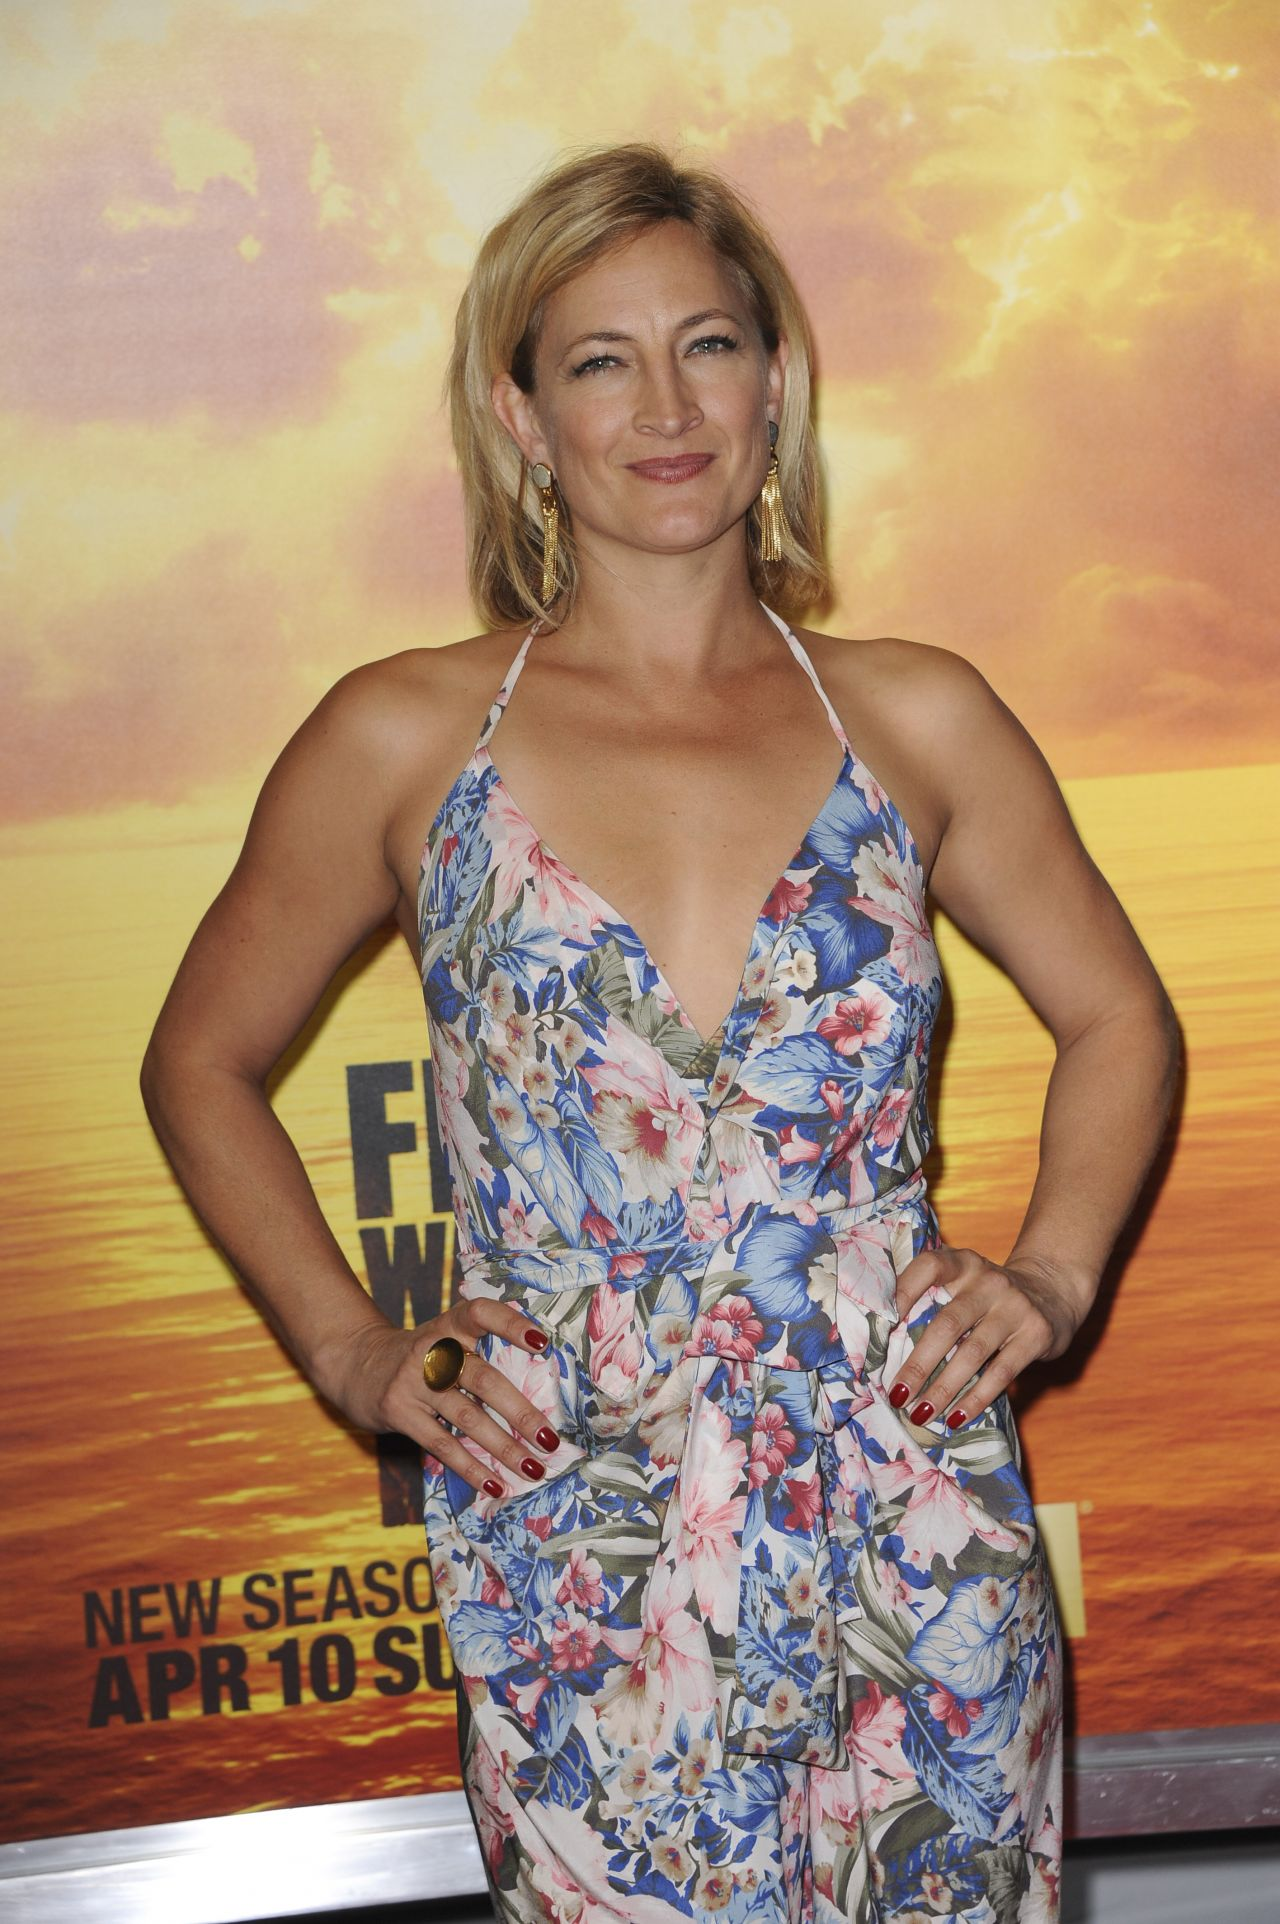 zoe-bell-fear-the-walking-dead-premiere-in-los-angeles-4